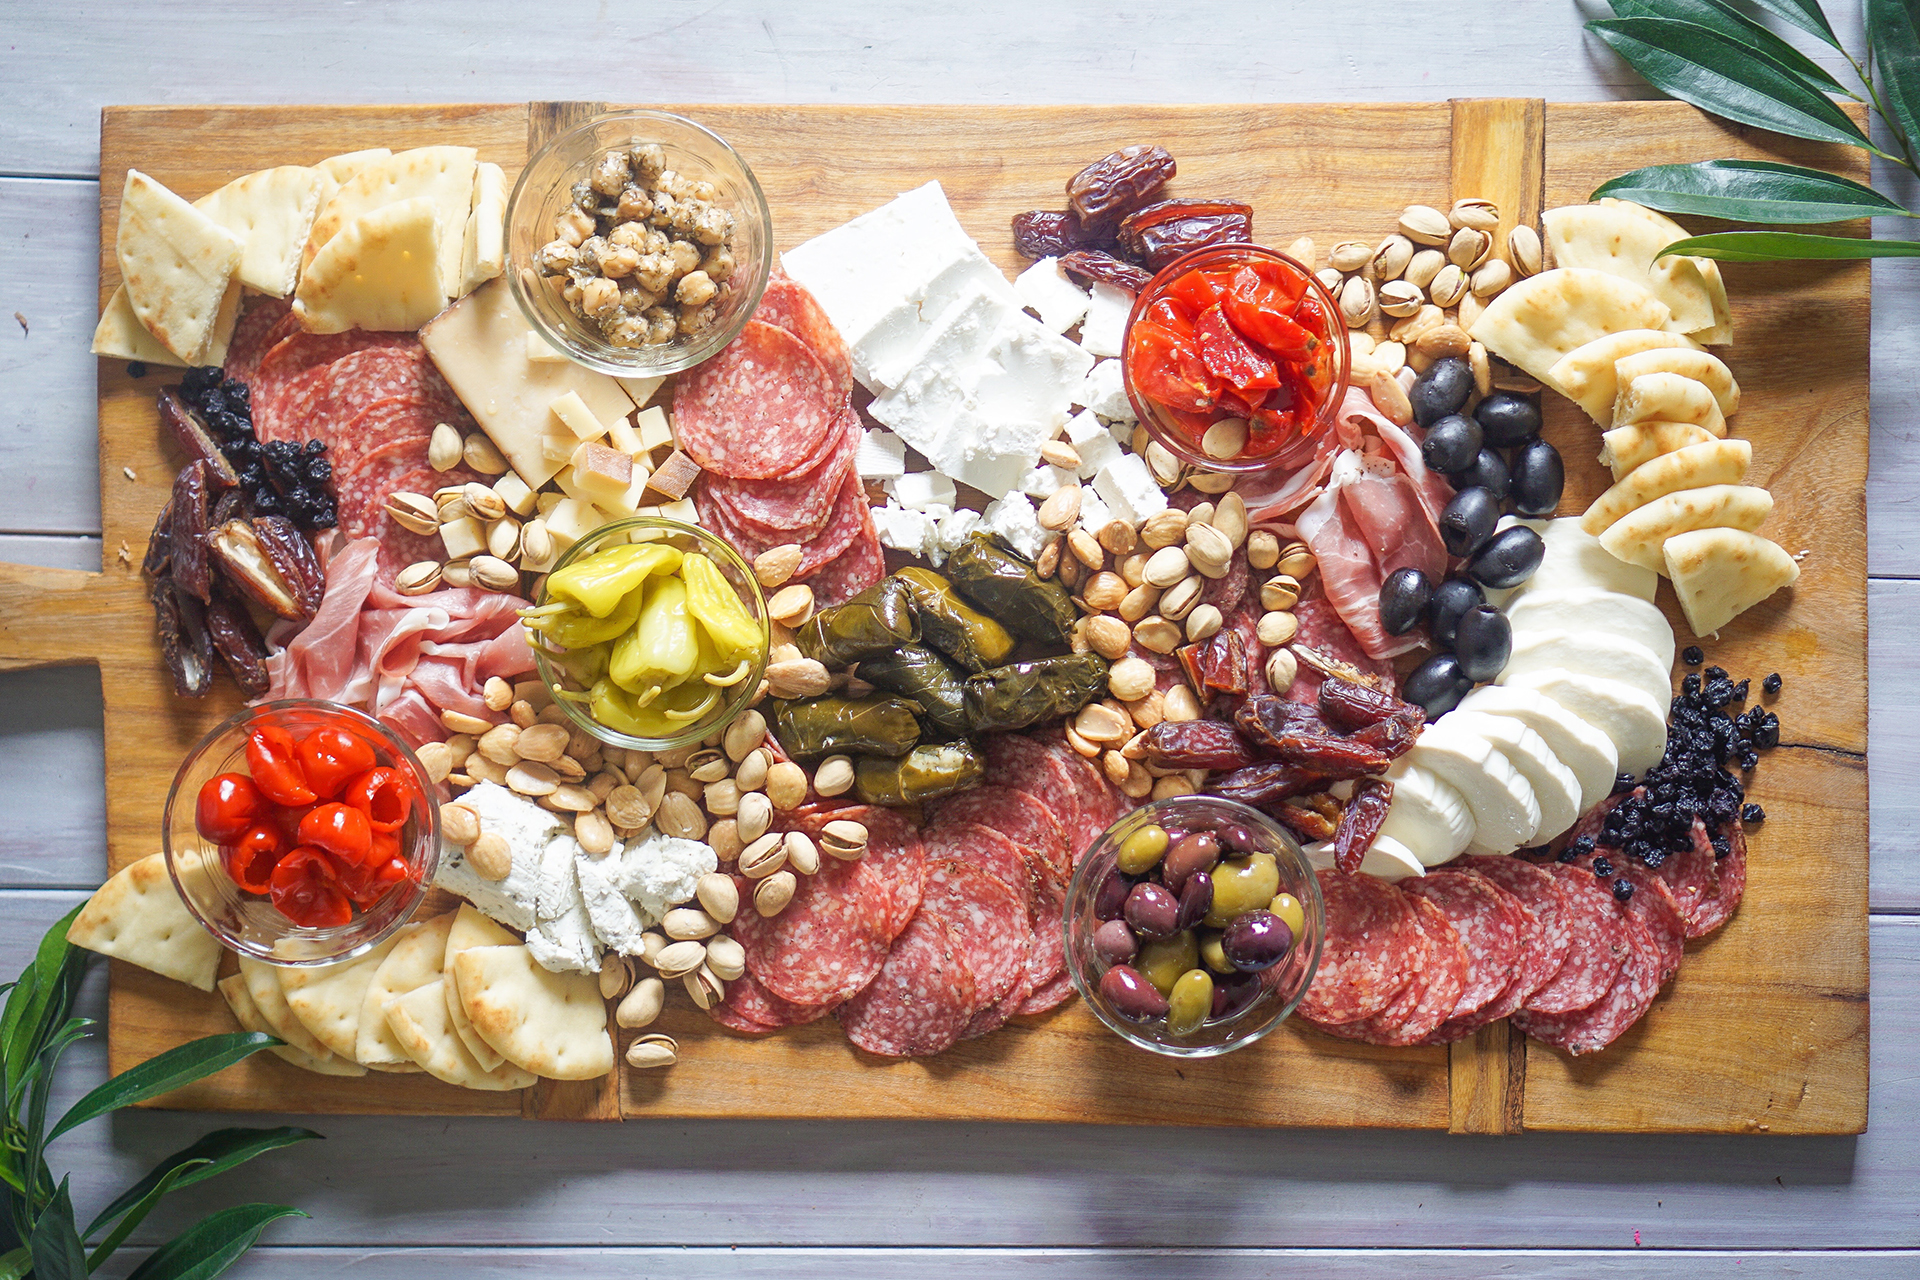 a photo of a Charcuterie plate